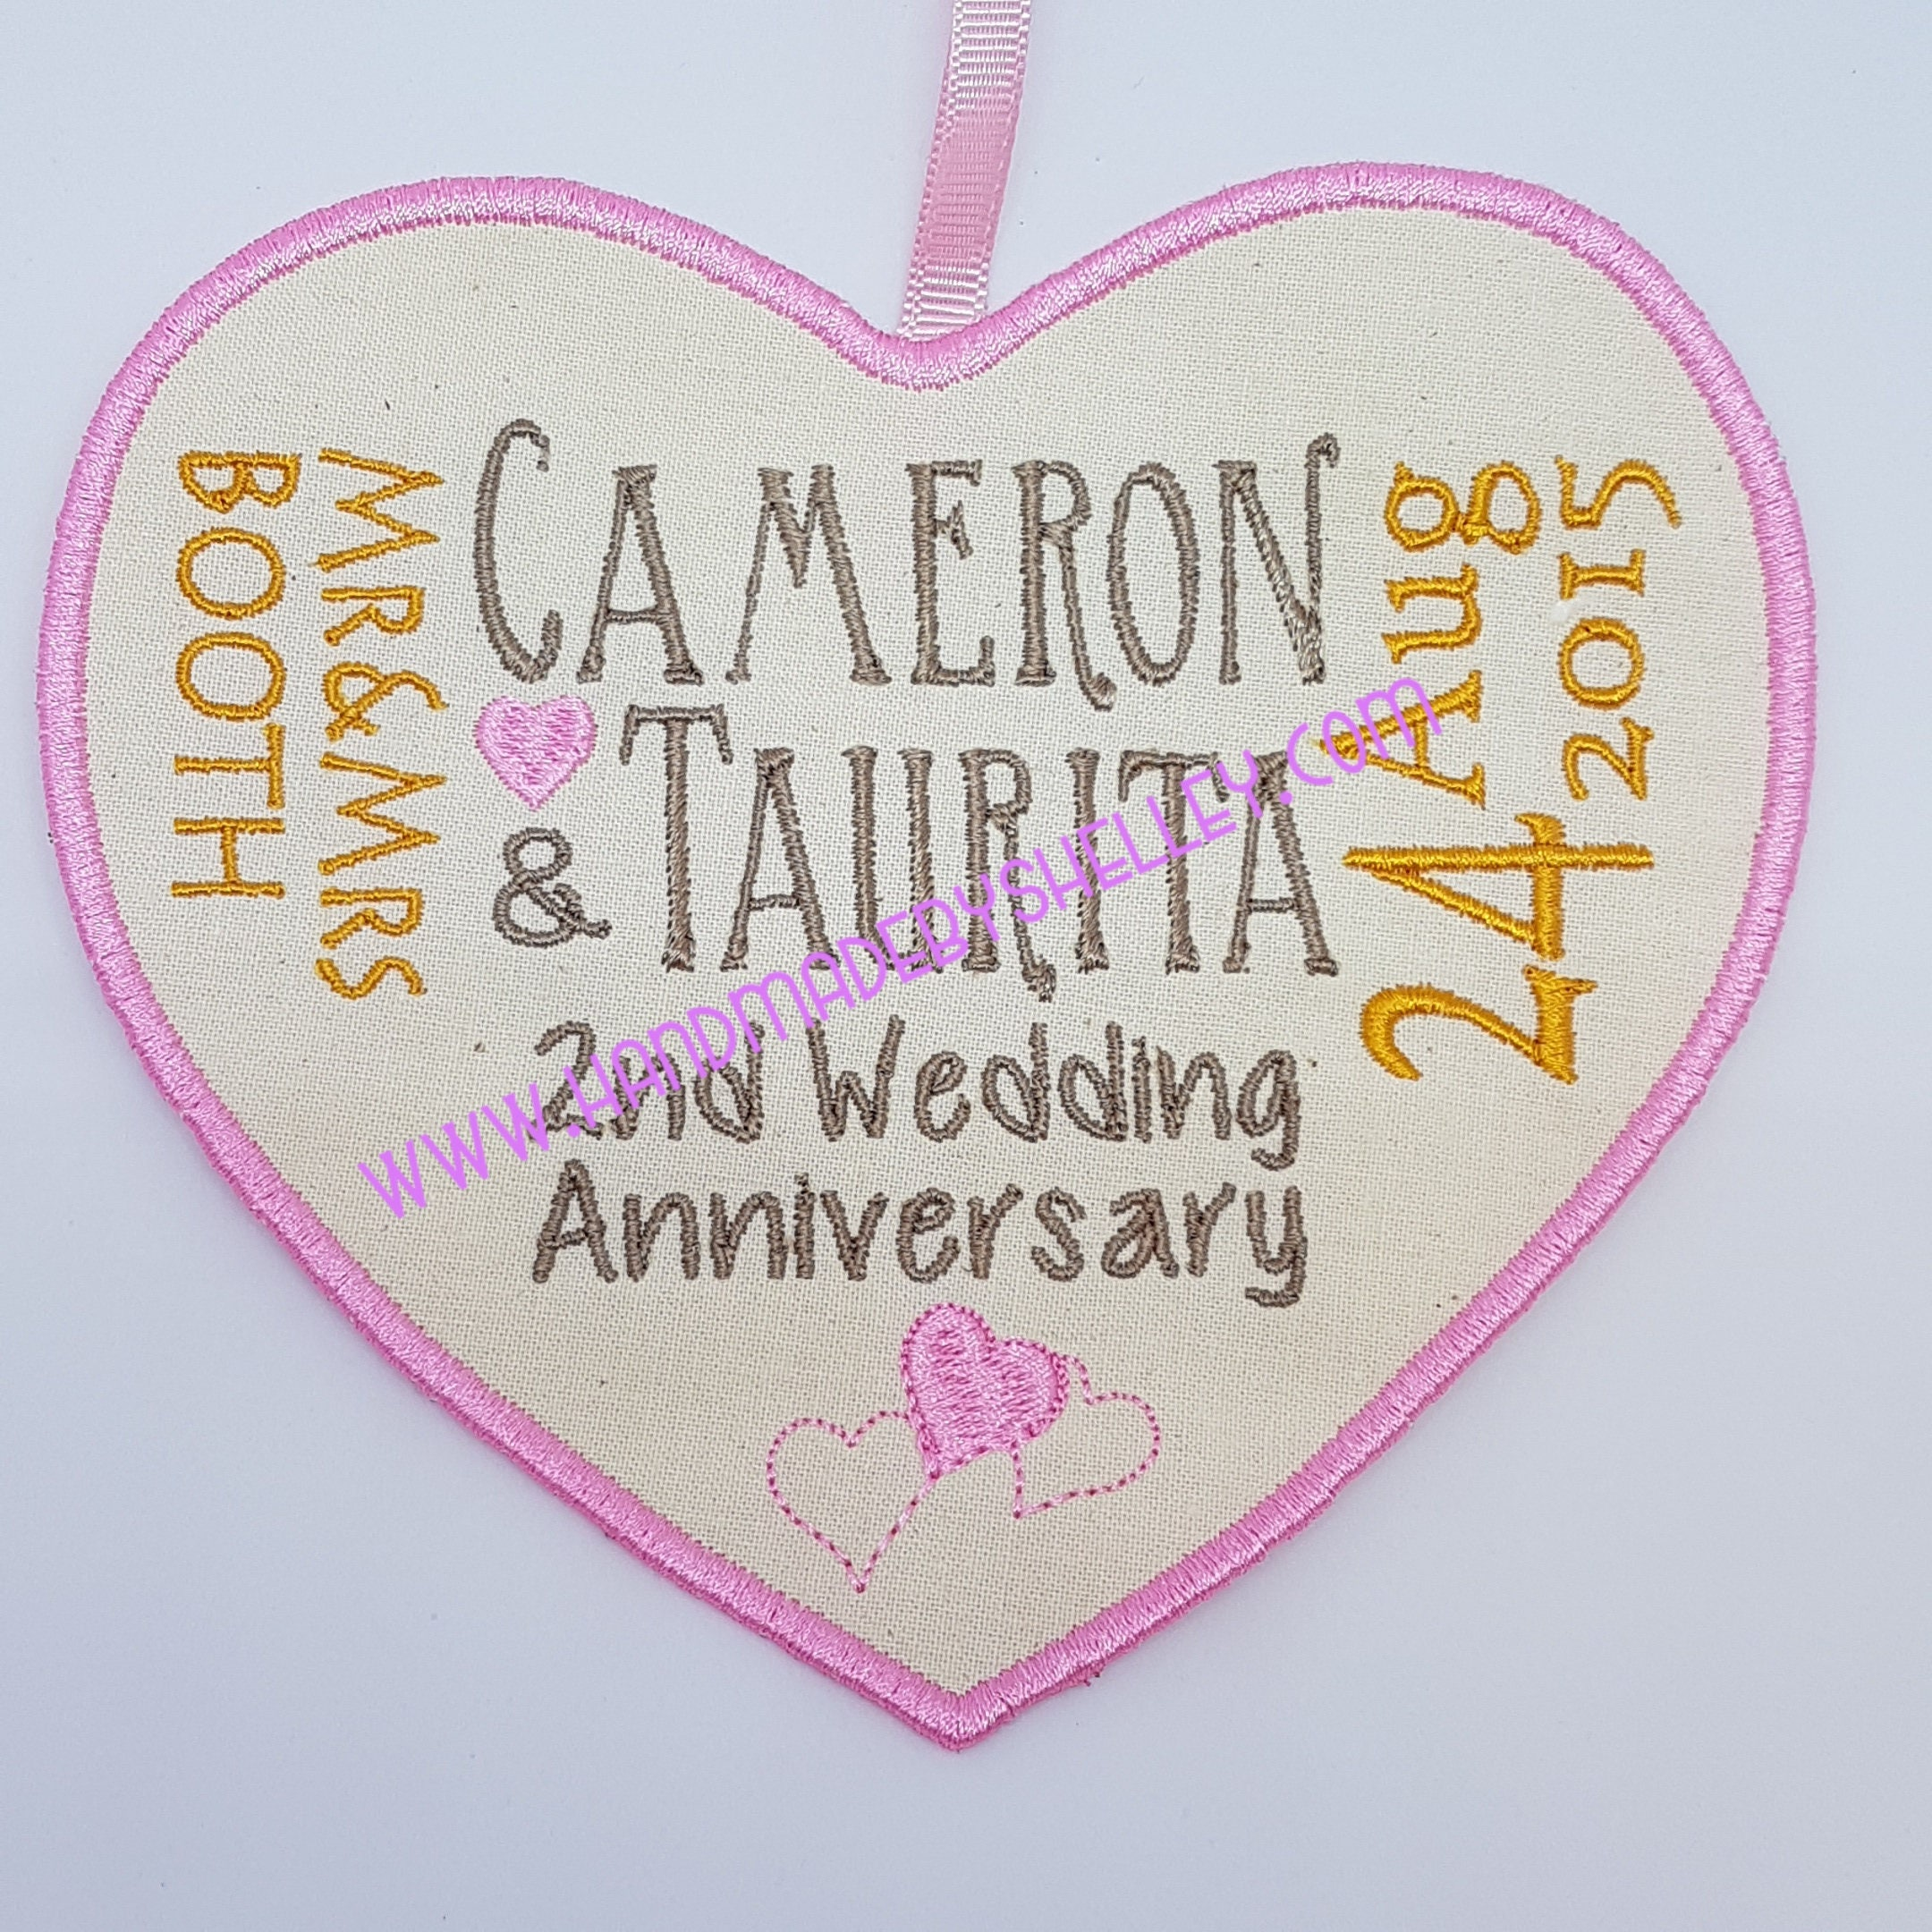 Second Wedding Anniversary Gifts: 2nd Wedding Anniversary Cotton Personalised Heart Gift Husband